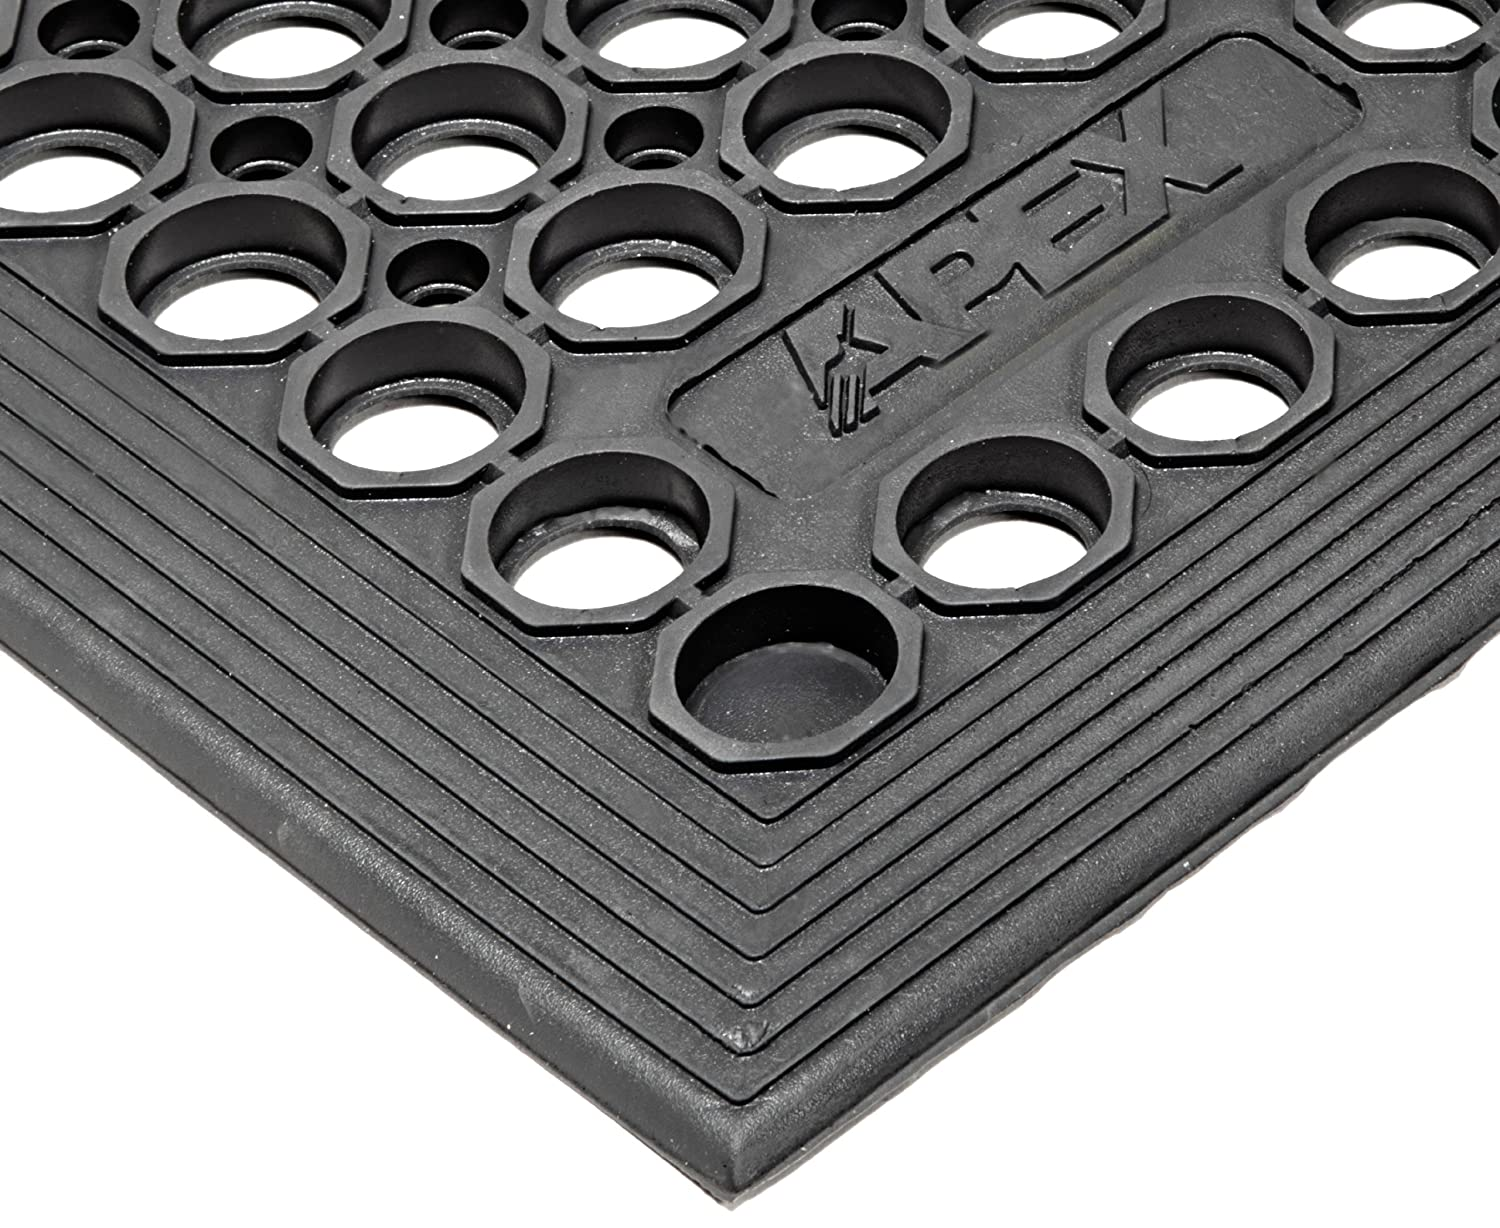 Rubber floor mats for wet areas - Notrax T30 General Purpose Rubber Competitor Safety Anti Fatigue Mat For Wet Areas 3 Width X 3 Length X 1 2 Thickness Black Floor Matting